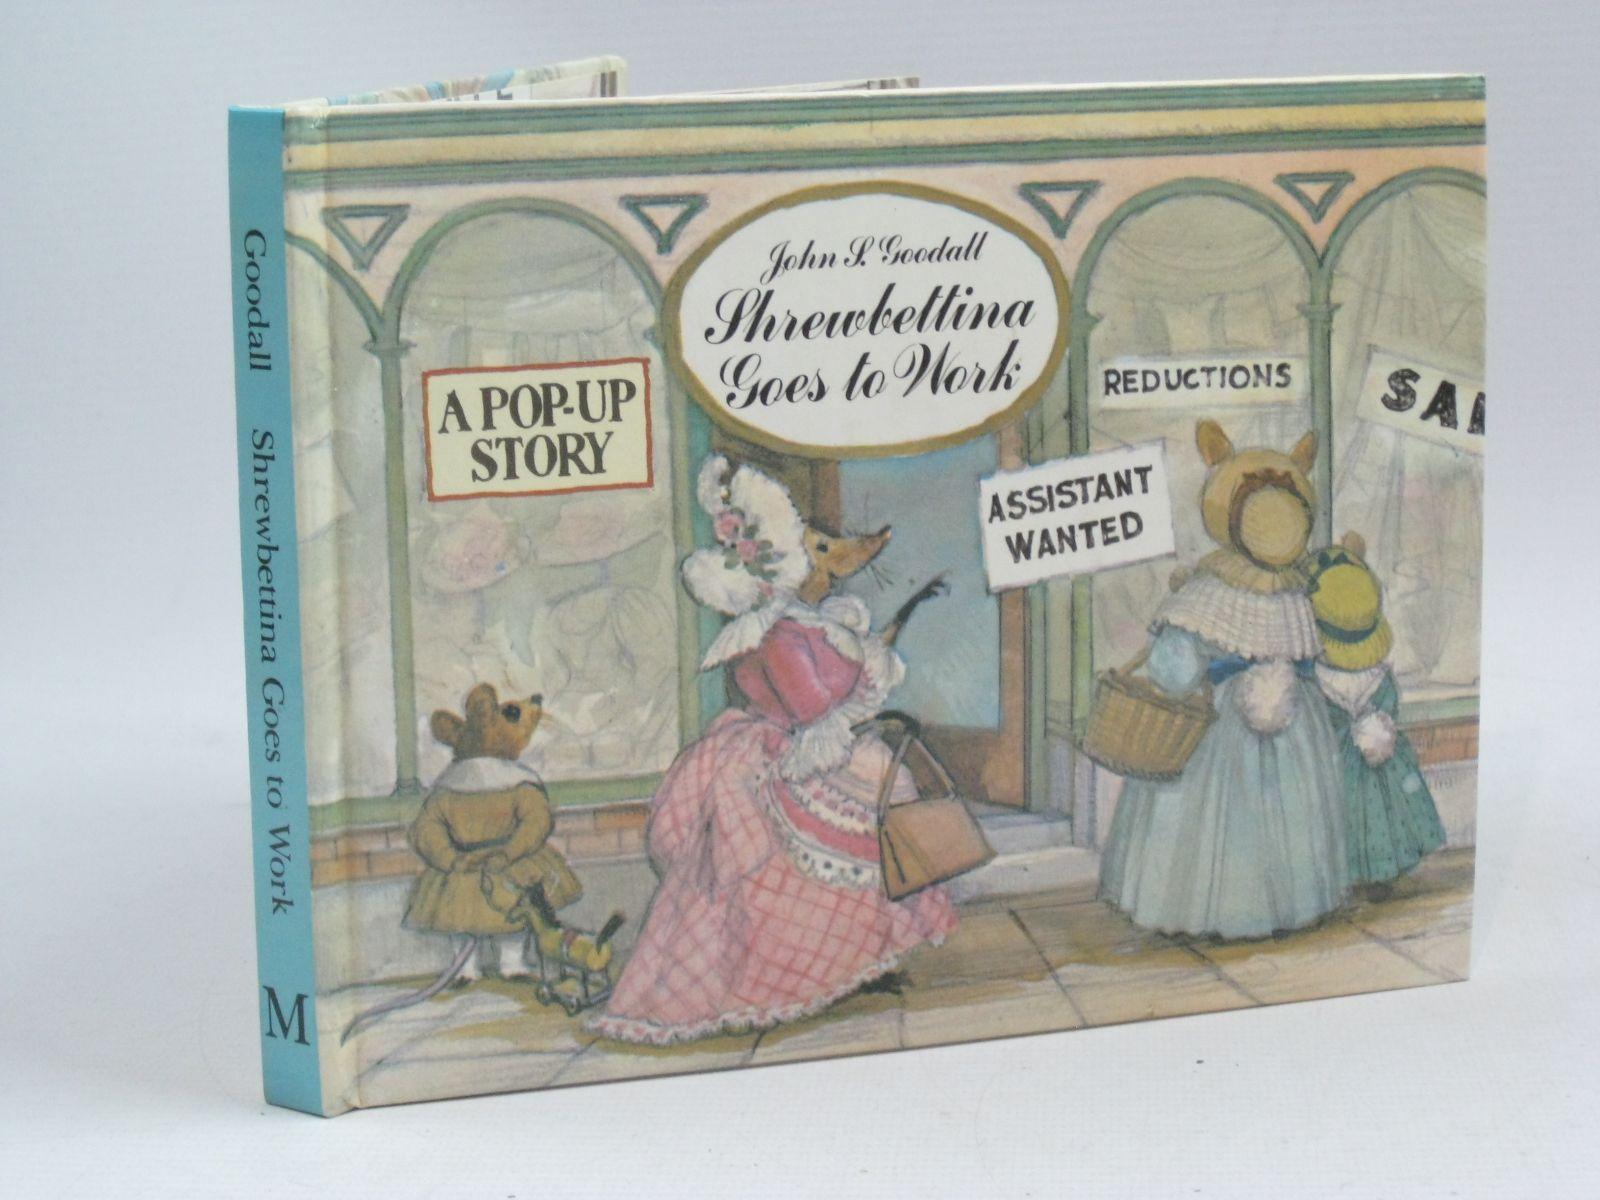 Photo of SHREWBETTINA GOES TO WORK written by Goodall, John S. illustrated by Goodall, John S. published by Macmillan Children's Books (STOCK CODE: 1505362)  for sale by Stella & Rose's Books